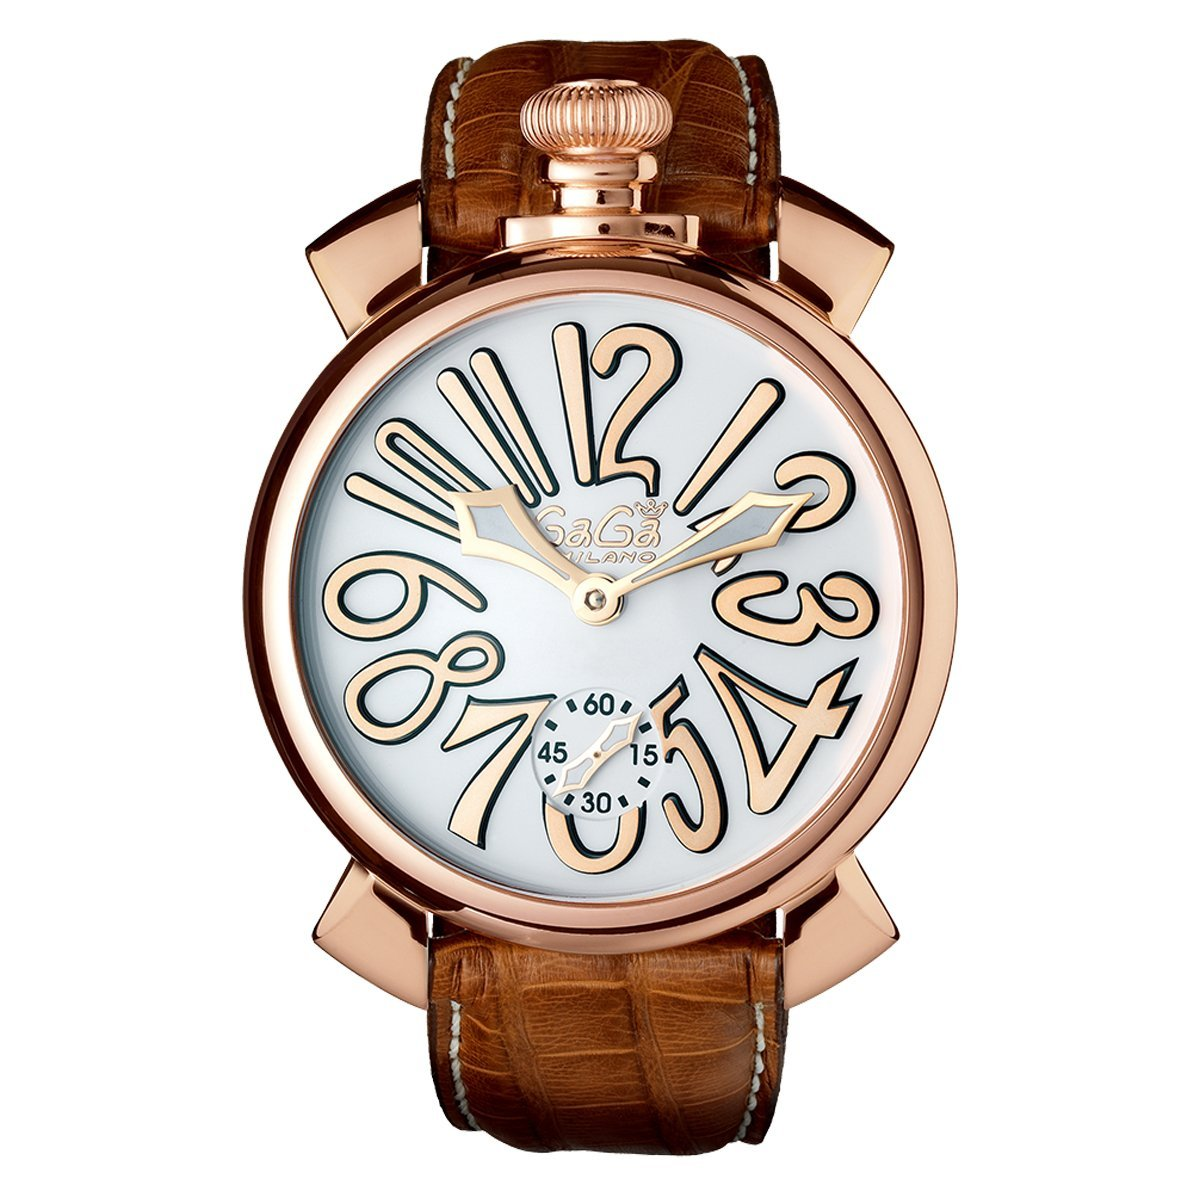 GaGà Milano Manuale 48MM Rose Gold - Watches & Crystals